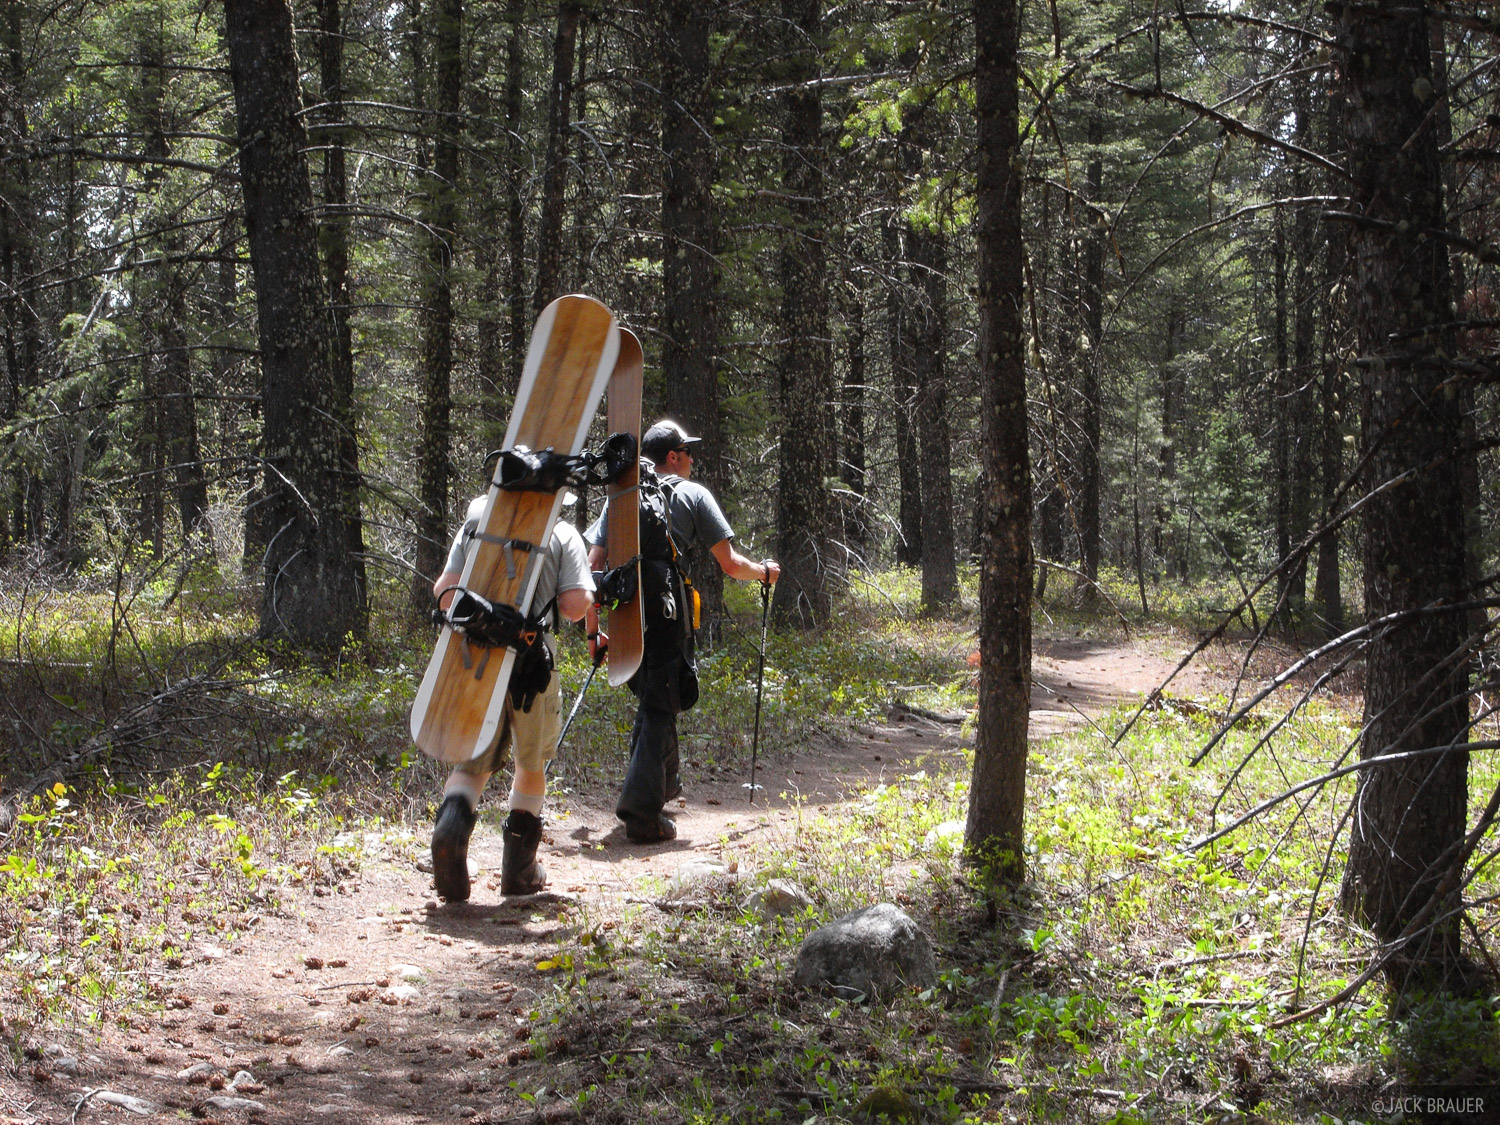 Hiking out the forest trail after a good day of riding.